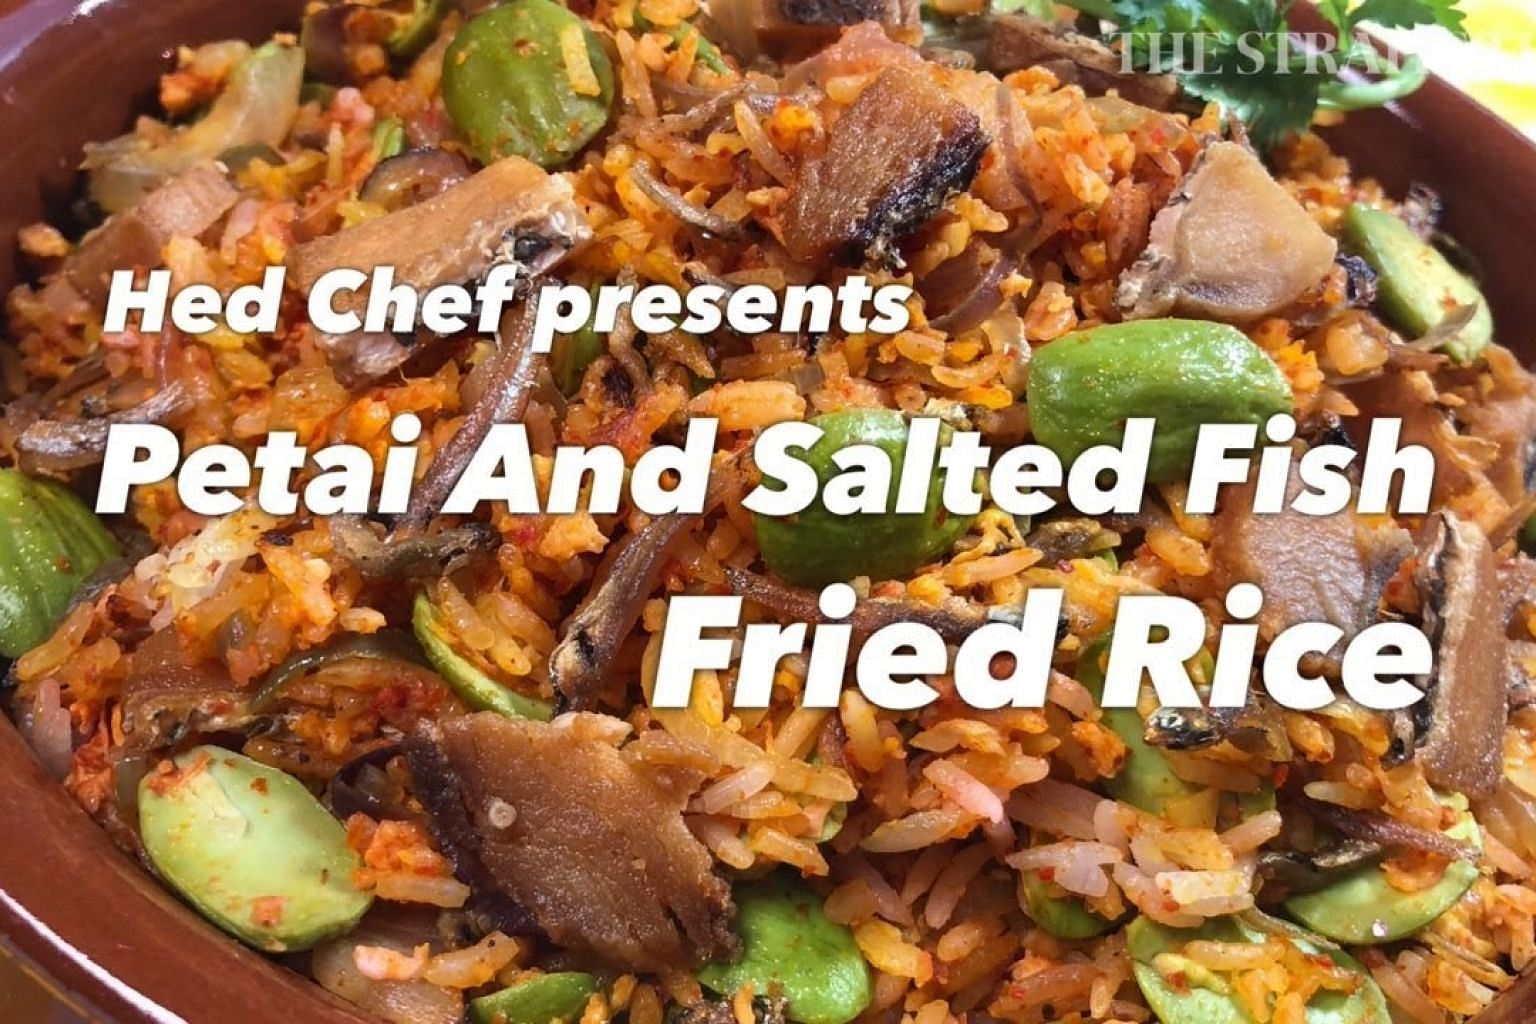 Petai And Salted Fish Fried Rice